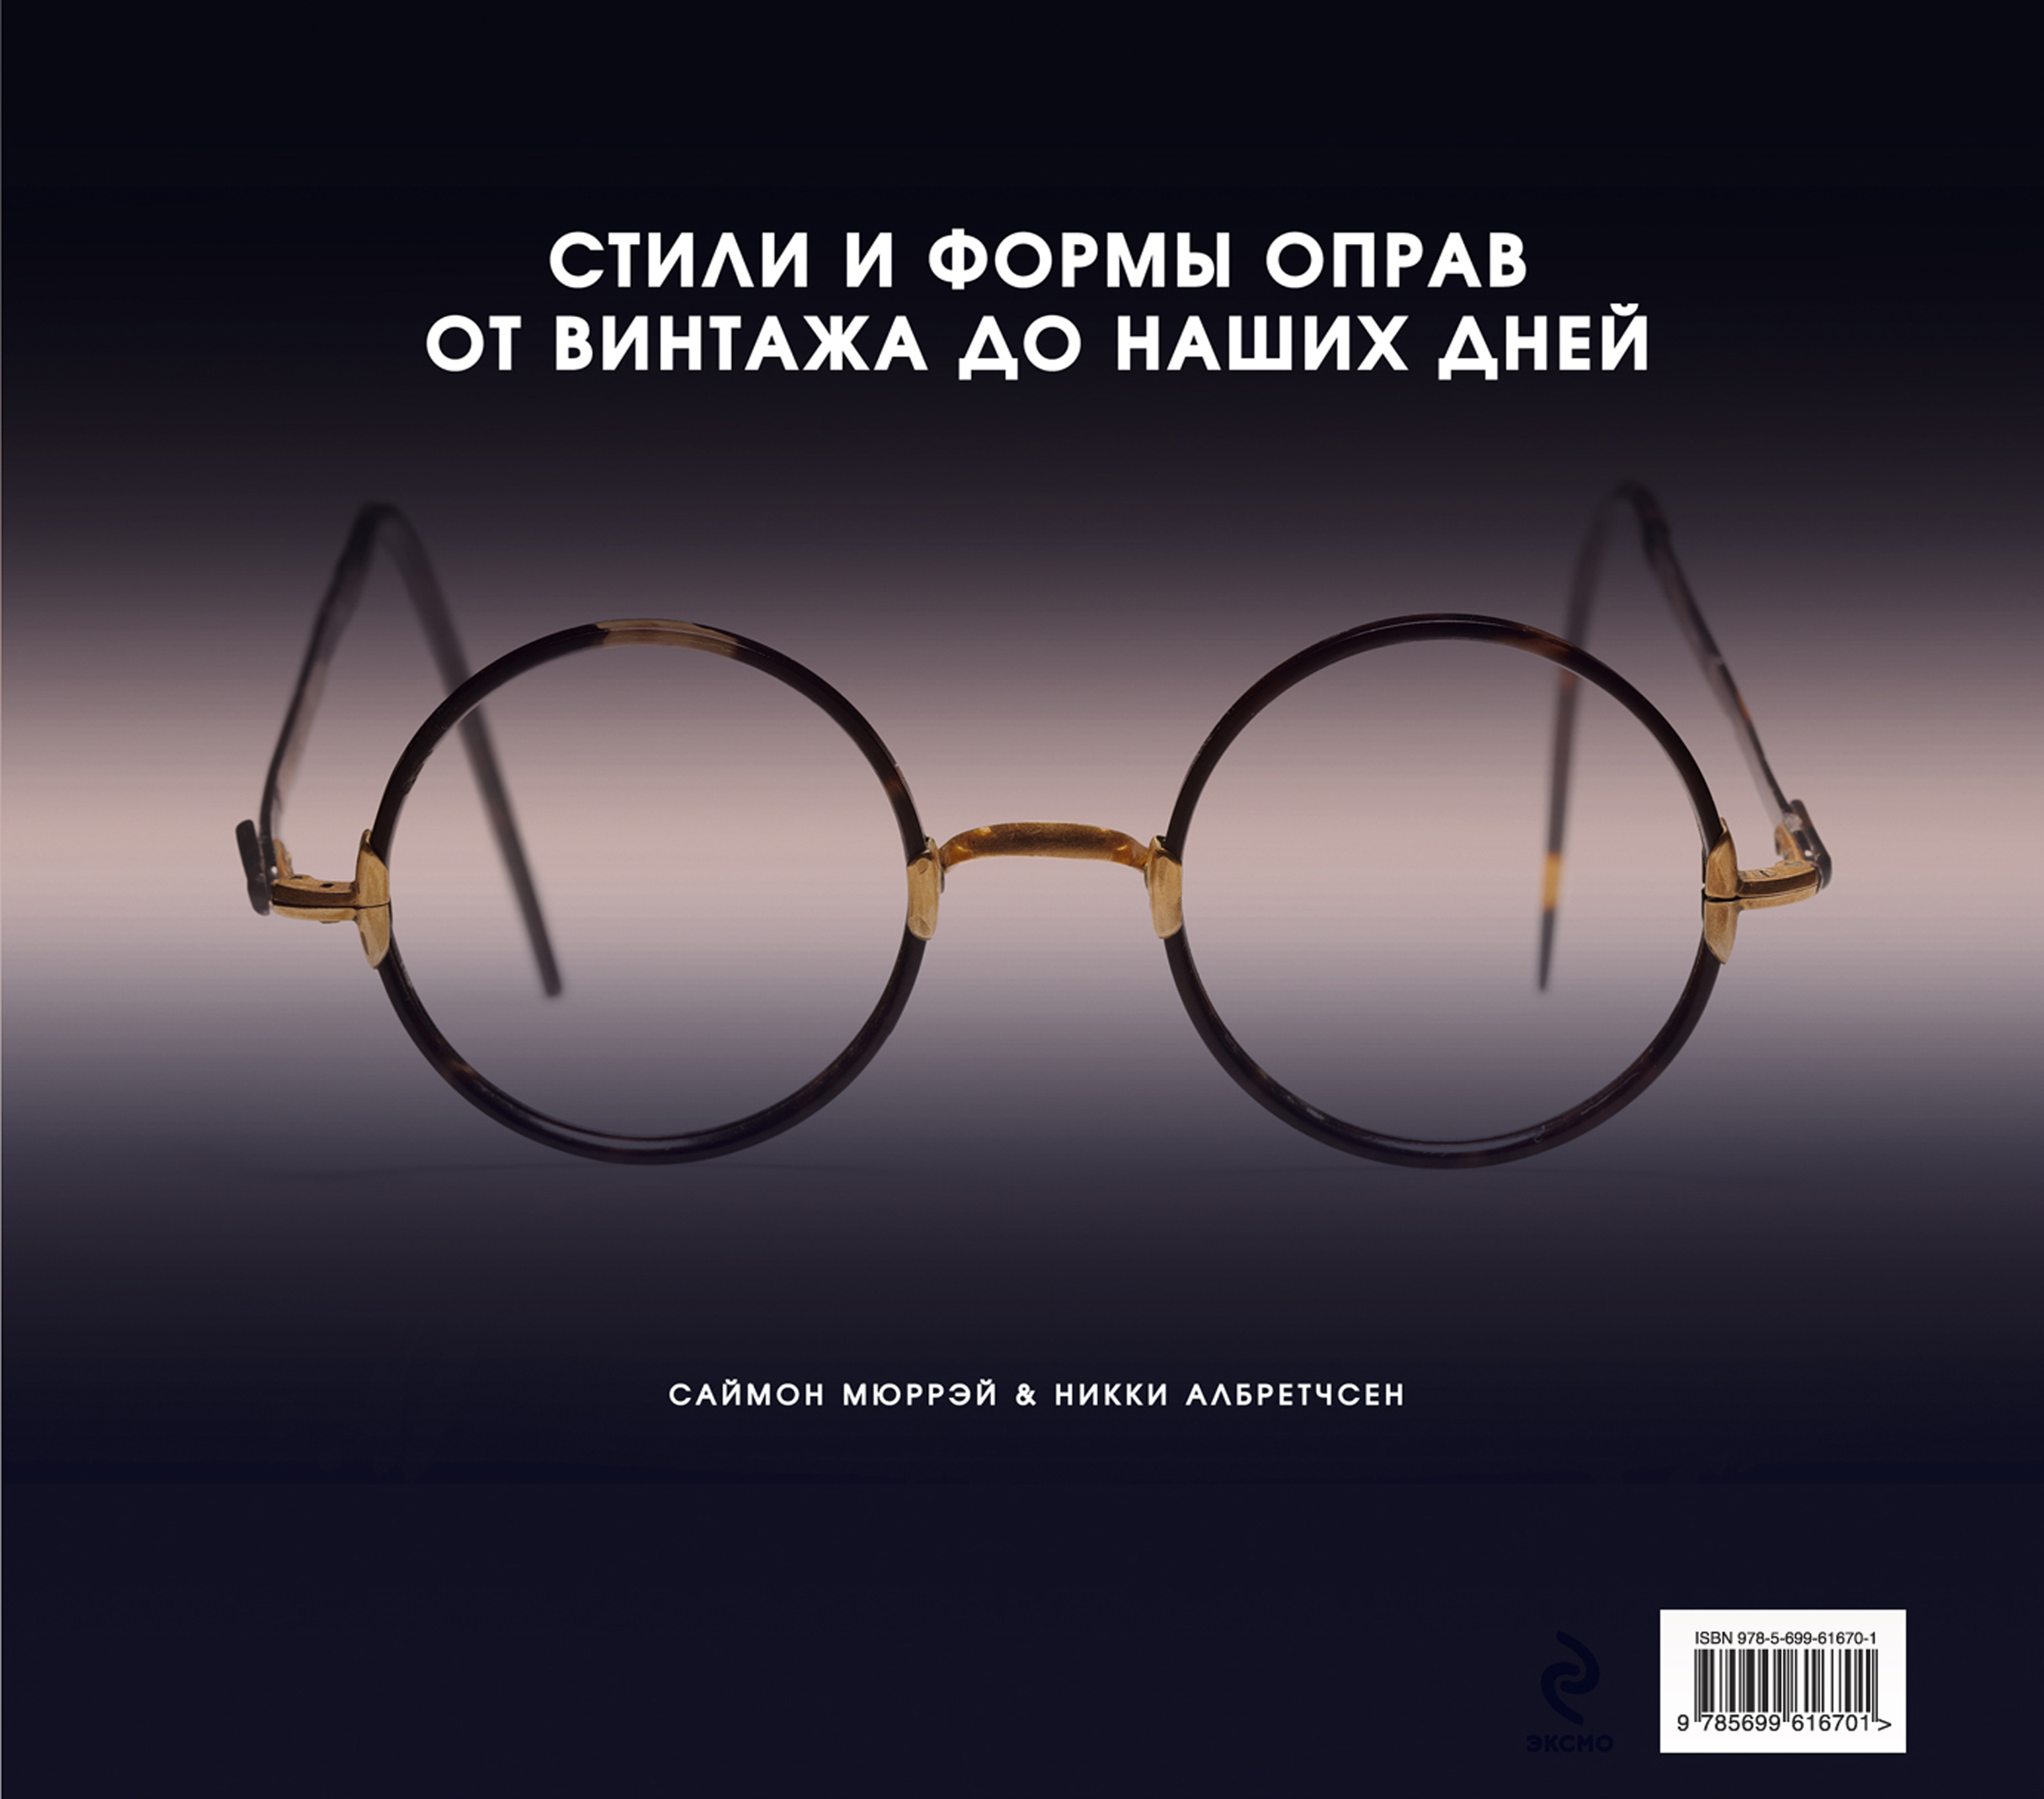 spectacles book of optics and school The book of optics by ibn -al haythram, better known by the singular name alhazan (965 -1040), a m uslim scientist, astronomer, and mathematician the translation of.